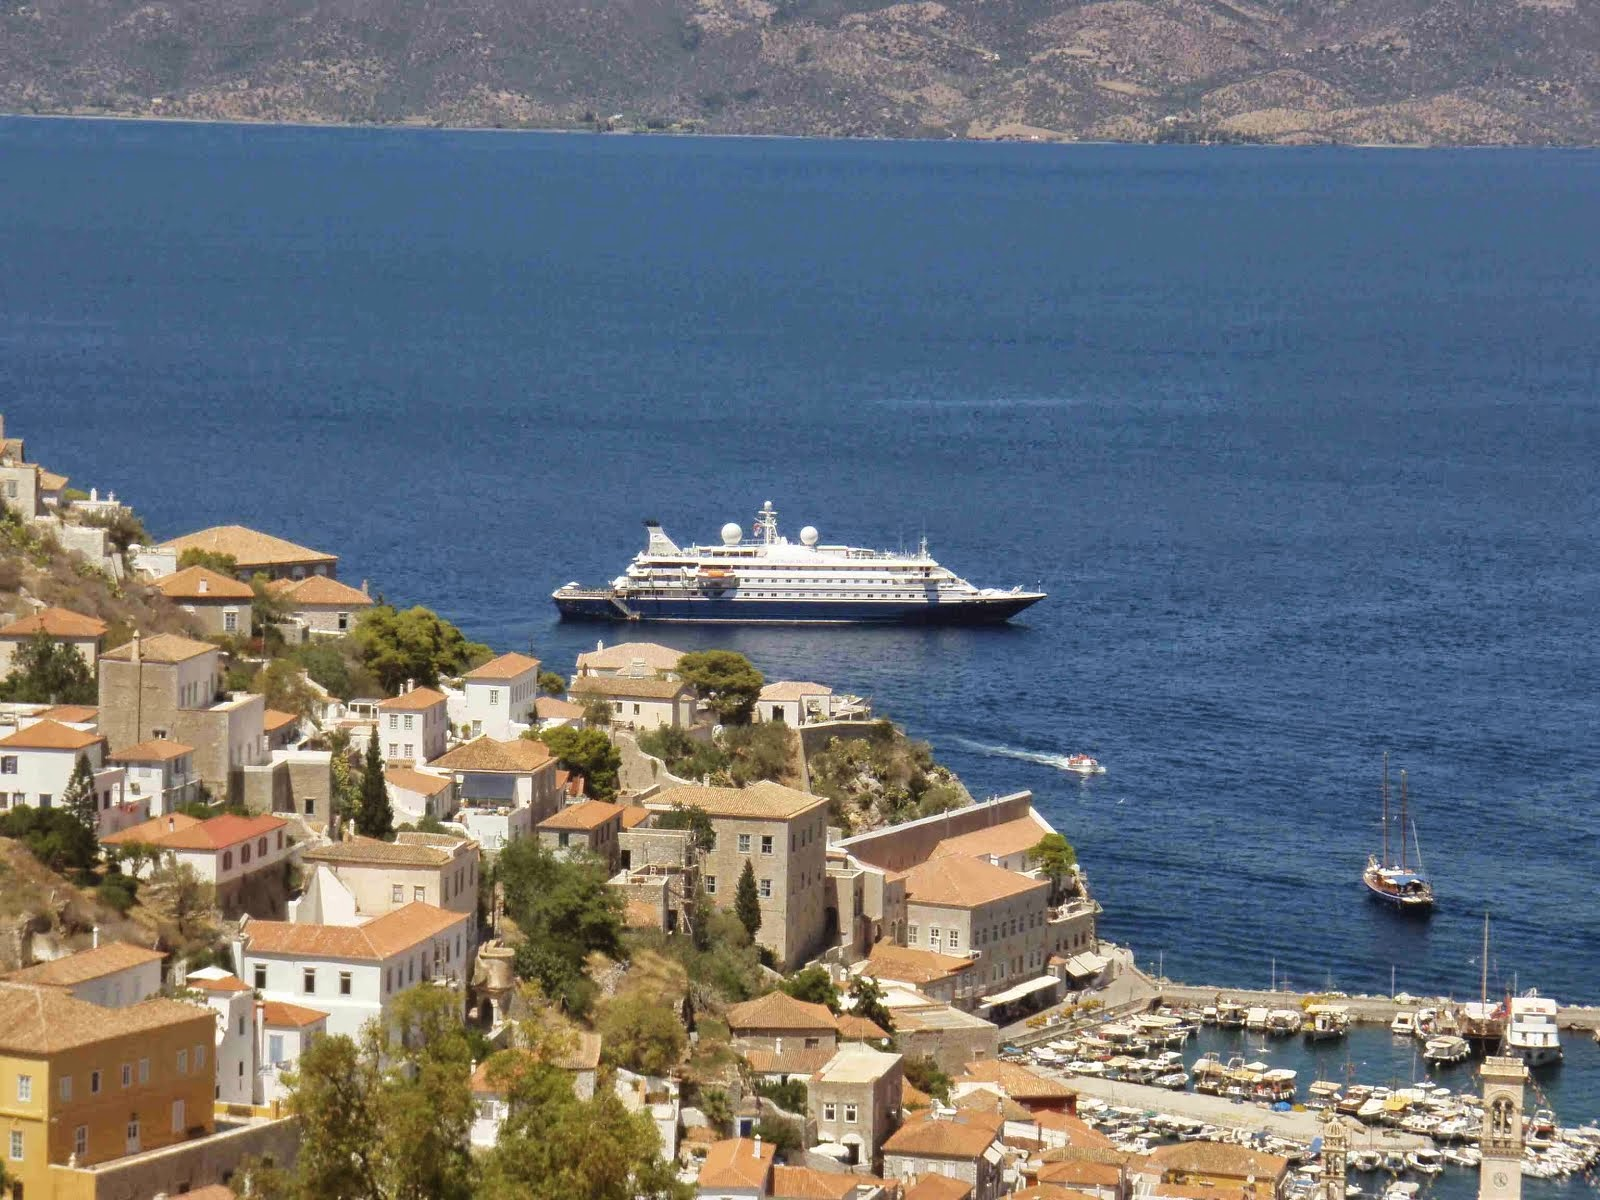 SeaDream cruise from Gallipoli to the Greek Islands May 2015